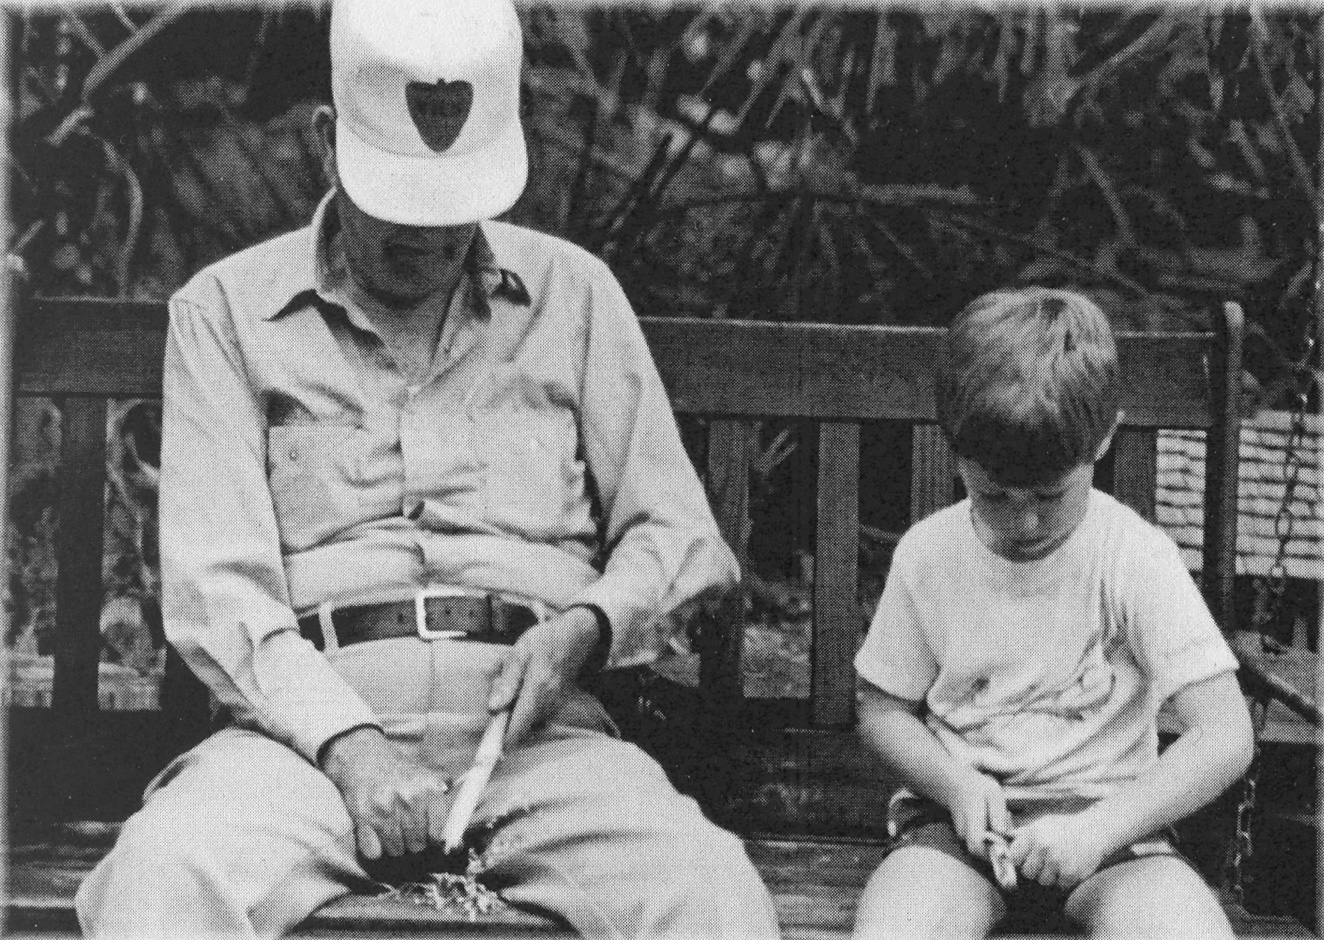 Whittling-with-Grandpa